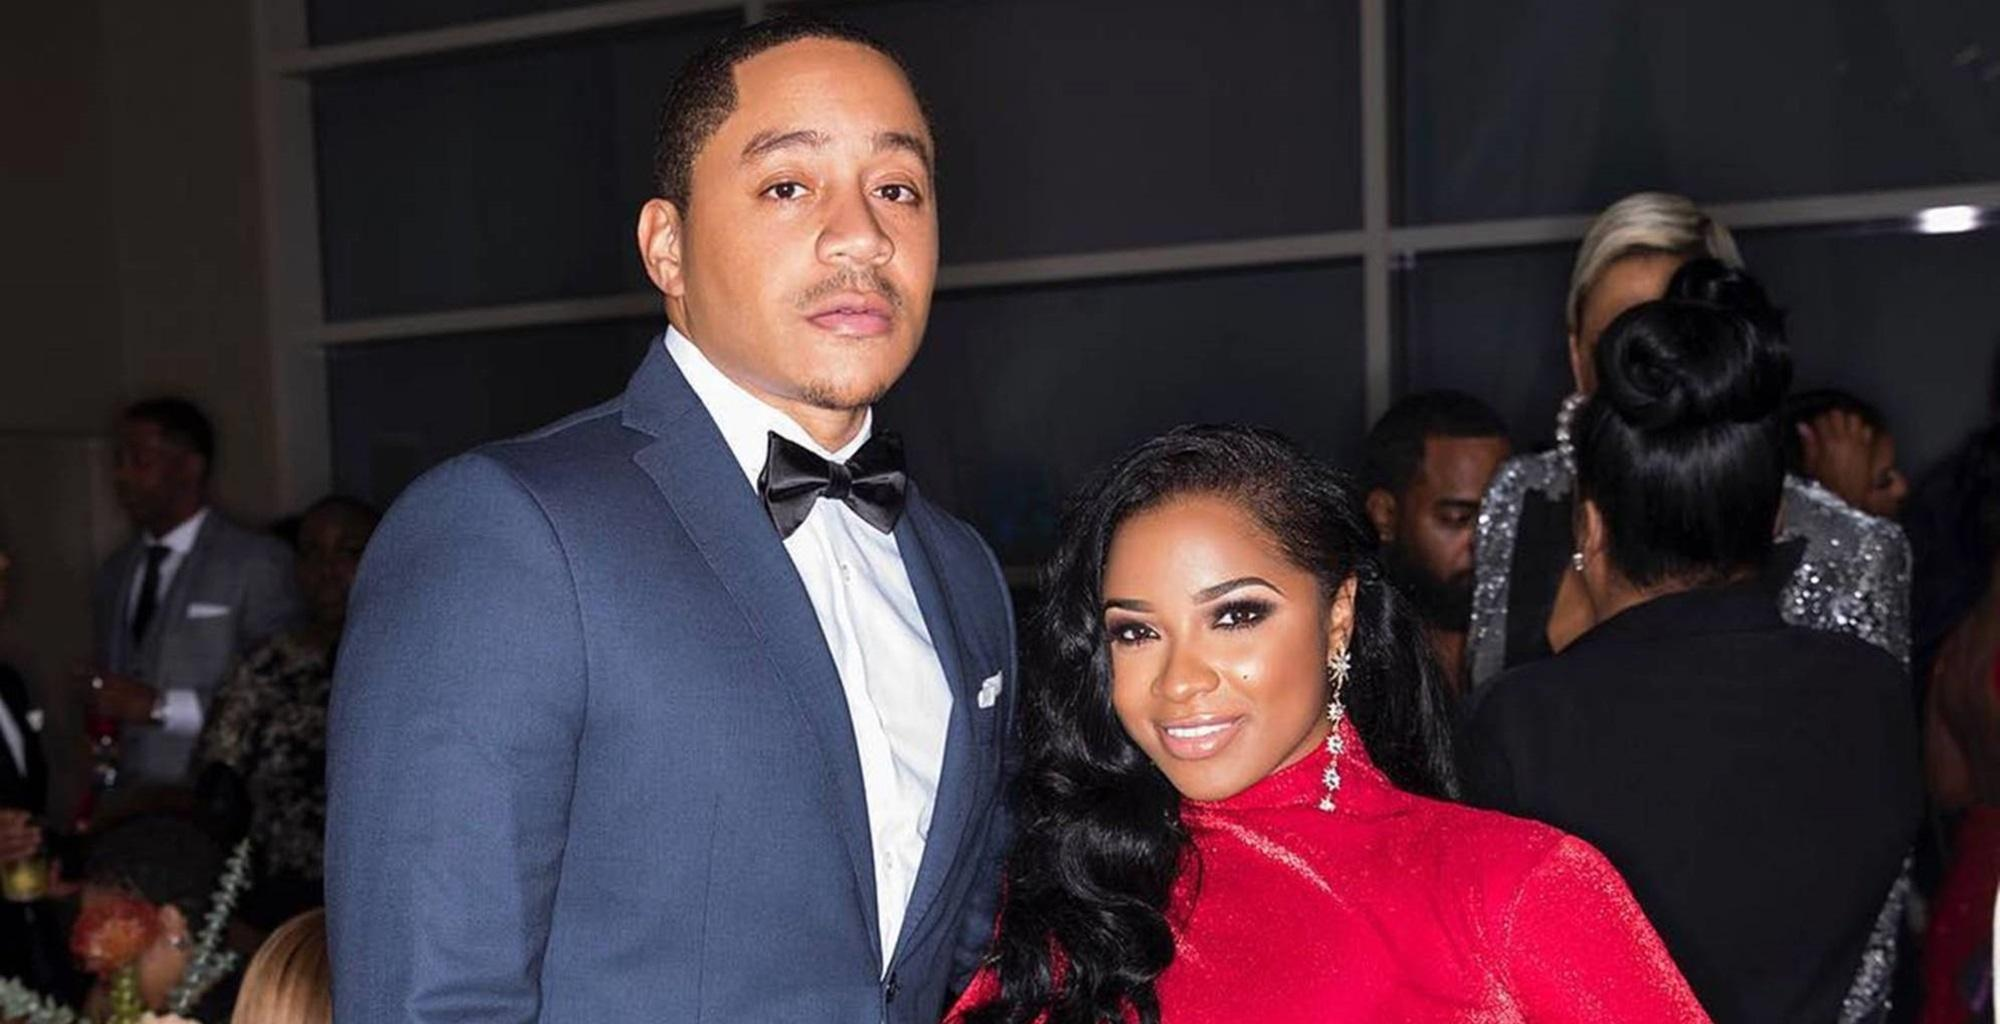 Toya Johnson And Robert Rushing Are Answering Some Juicy Questions About Their Relationship In This Video